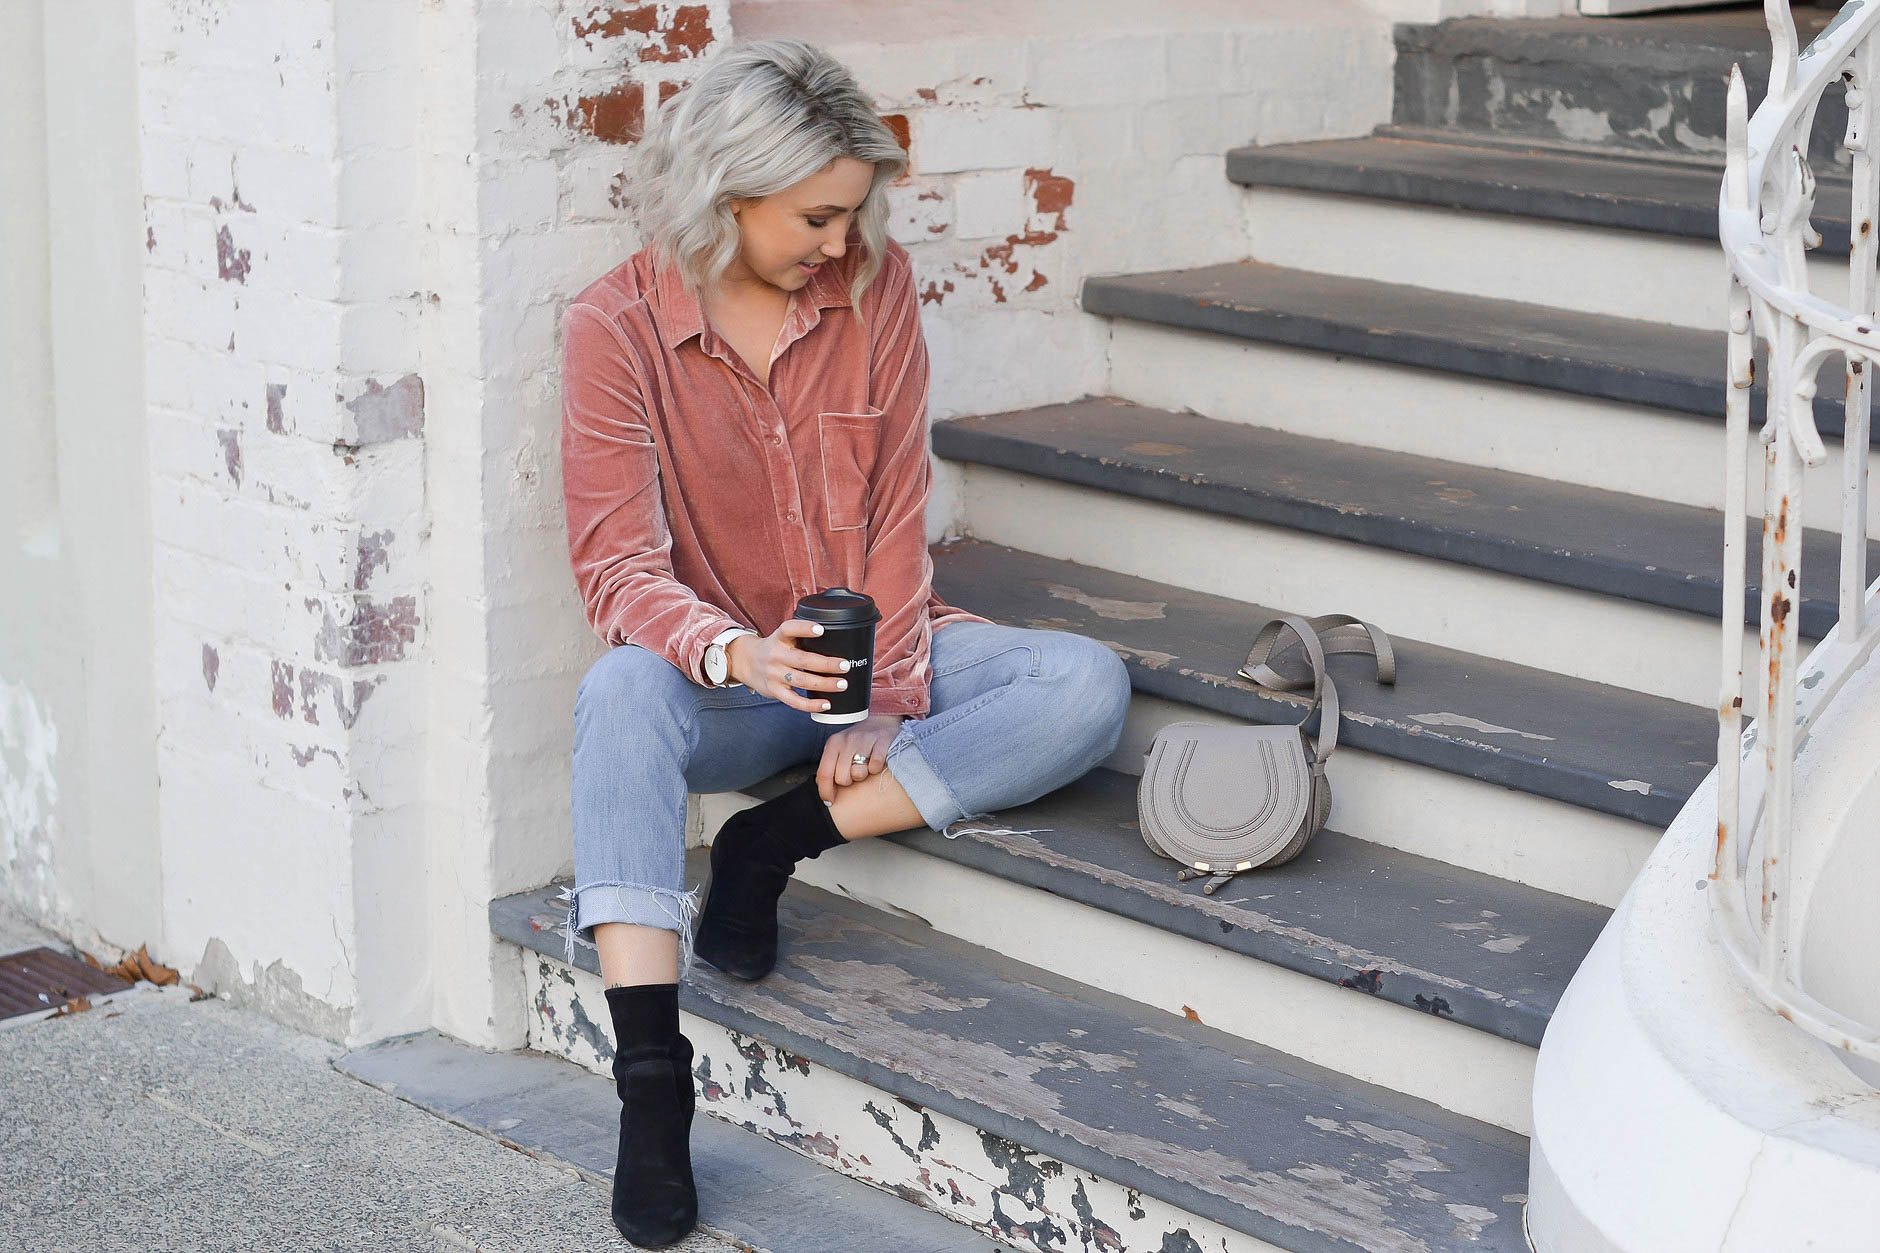 Outfit: Studio Velvet Shirt from  Lock & Key Clothing , Kick Crop Jeans from  Lock & Key Clothing , Demi Suede Boots from  Lock & Key Clothing , Why Watches Watch,Marmont Belt from  Gucci and Chloe Bag from  MatchesFashion